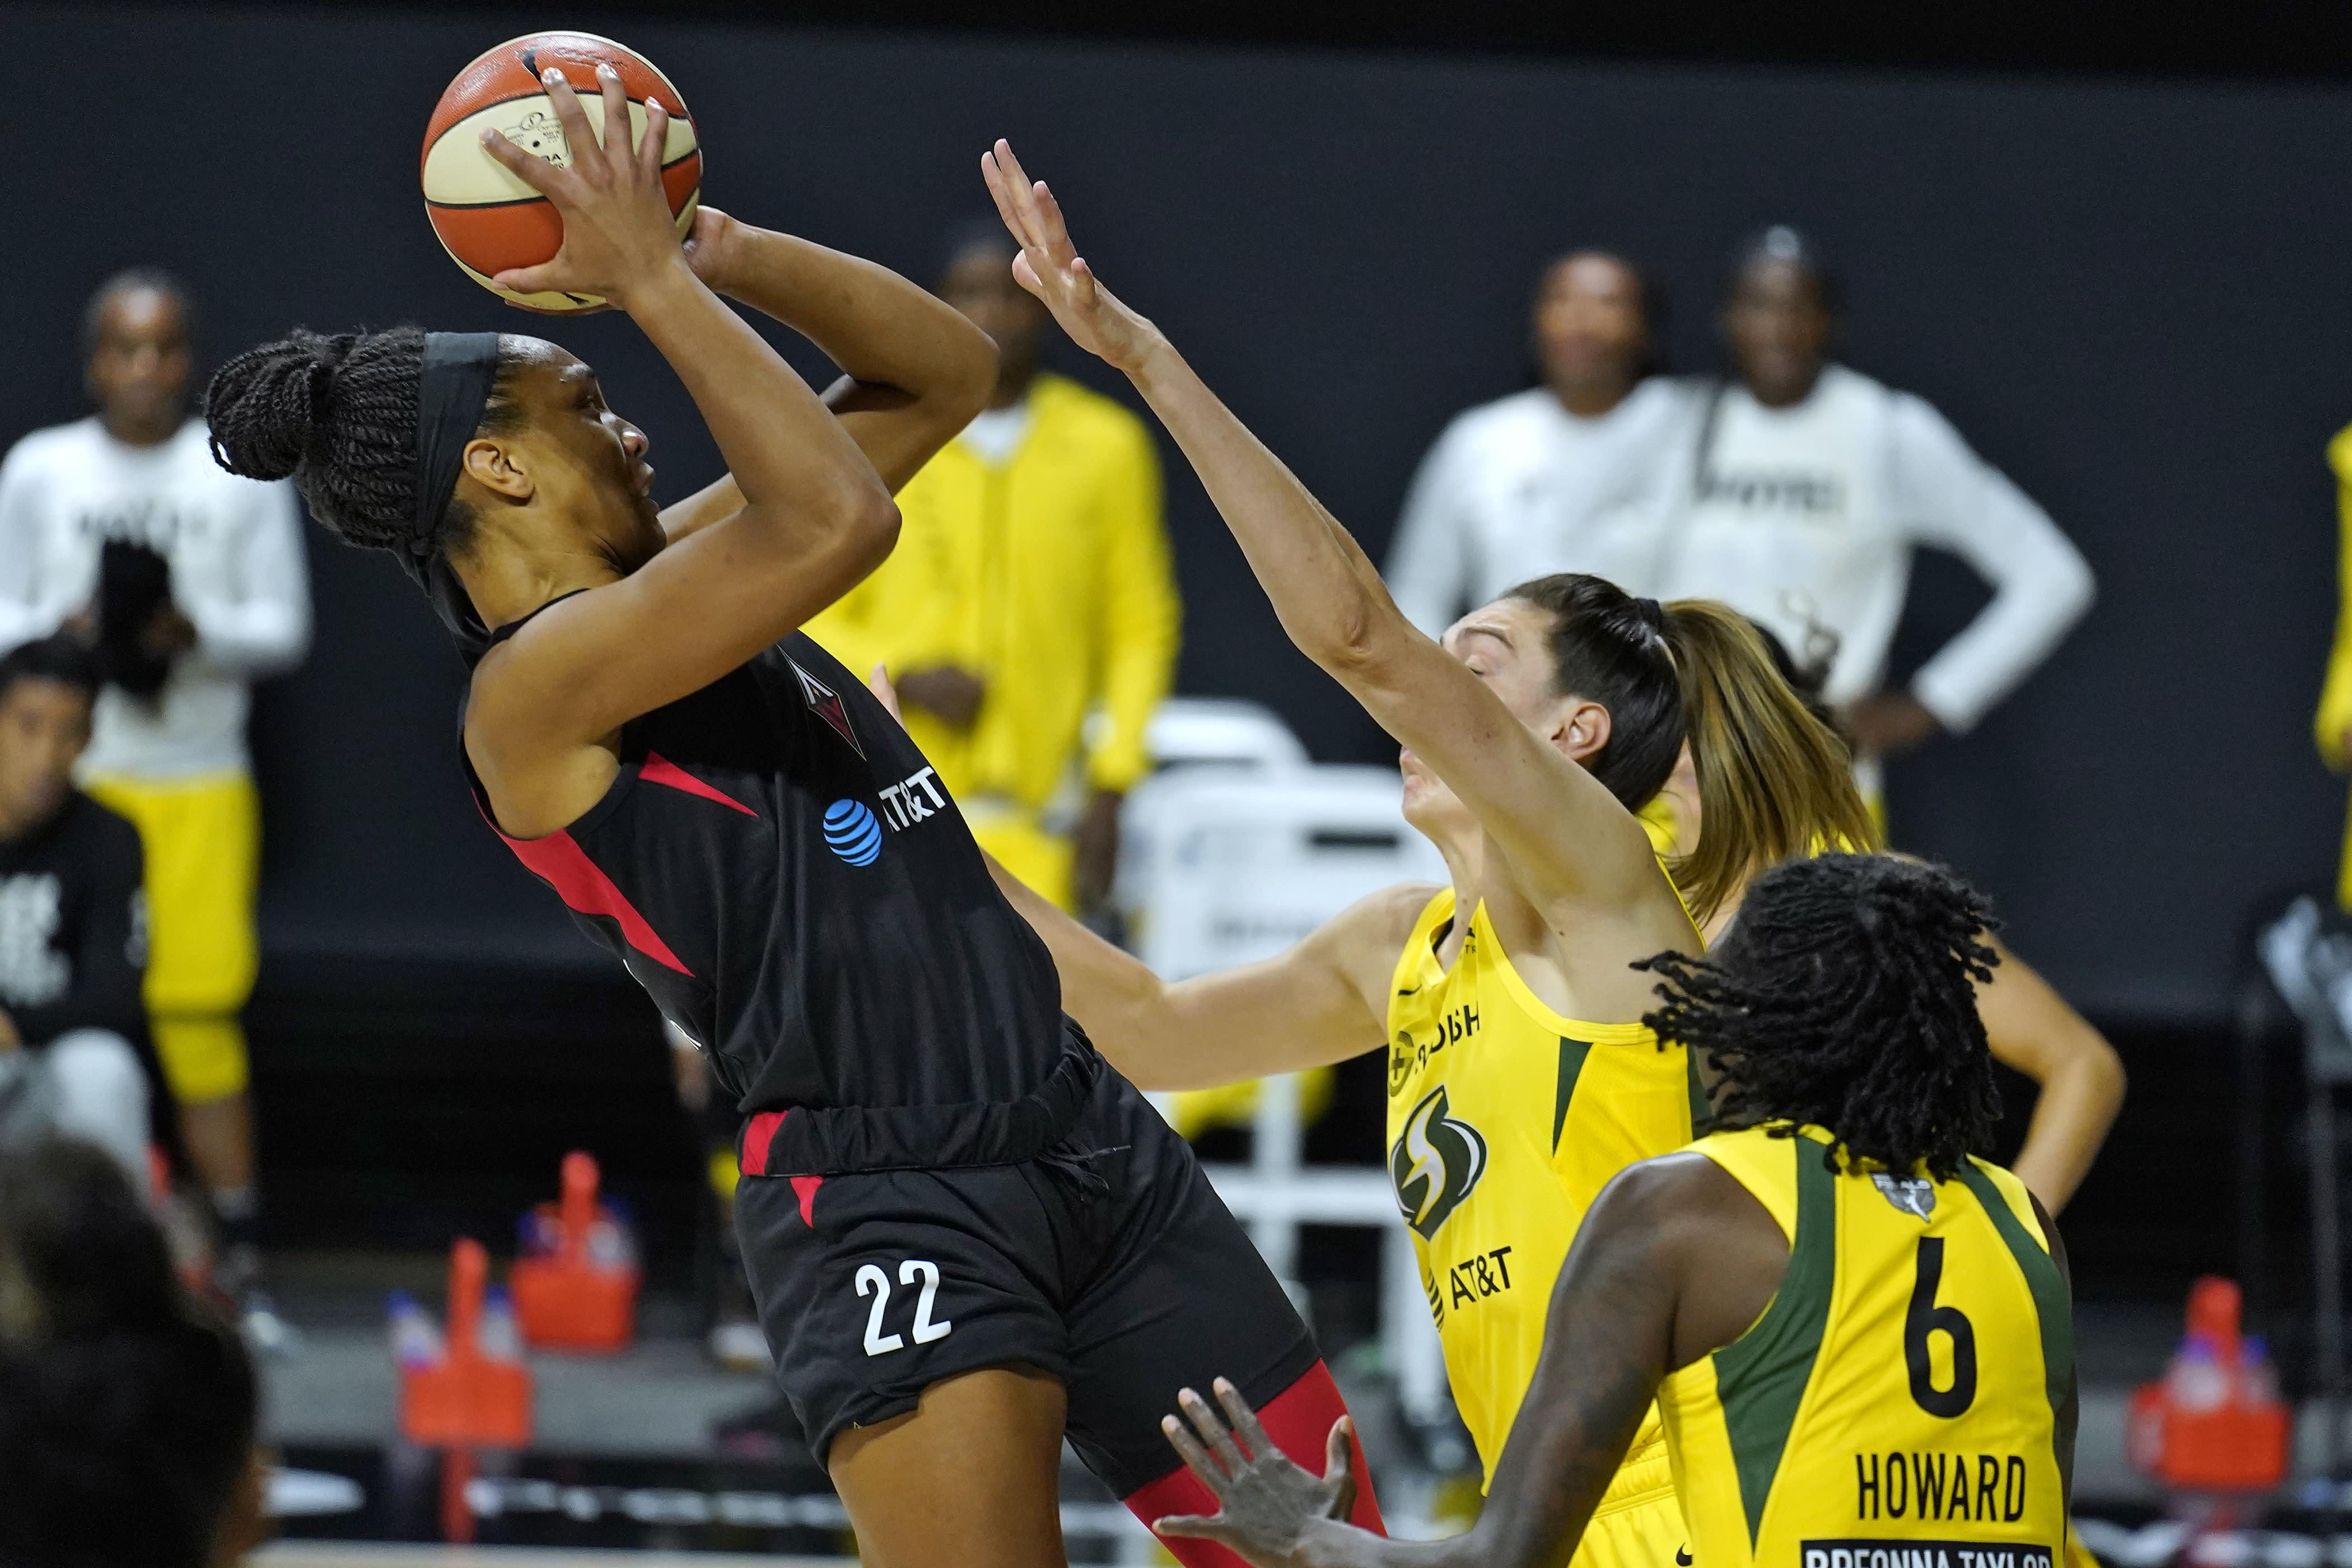 Las Vegas Aces center A'ja Wilson (22) shoots over Seattle Storm forward Breanna Stewart (30) and forward Natasha Howard (6) during the first half of Game 1 of basketball's WNBA Finals on Friday, Oct. 2, 2020, in Bradenton, Fla. (AP Photo/Chris O'Meara)